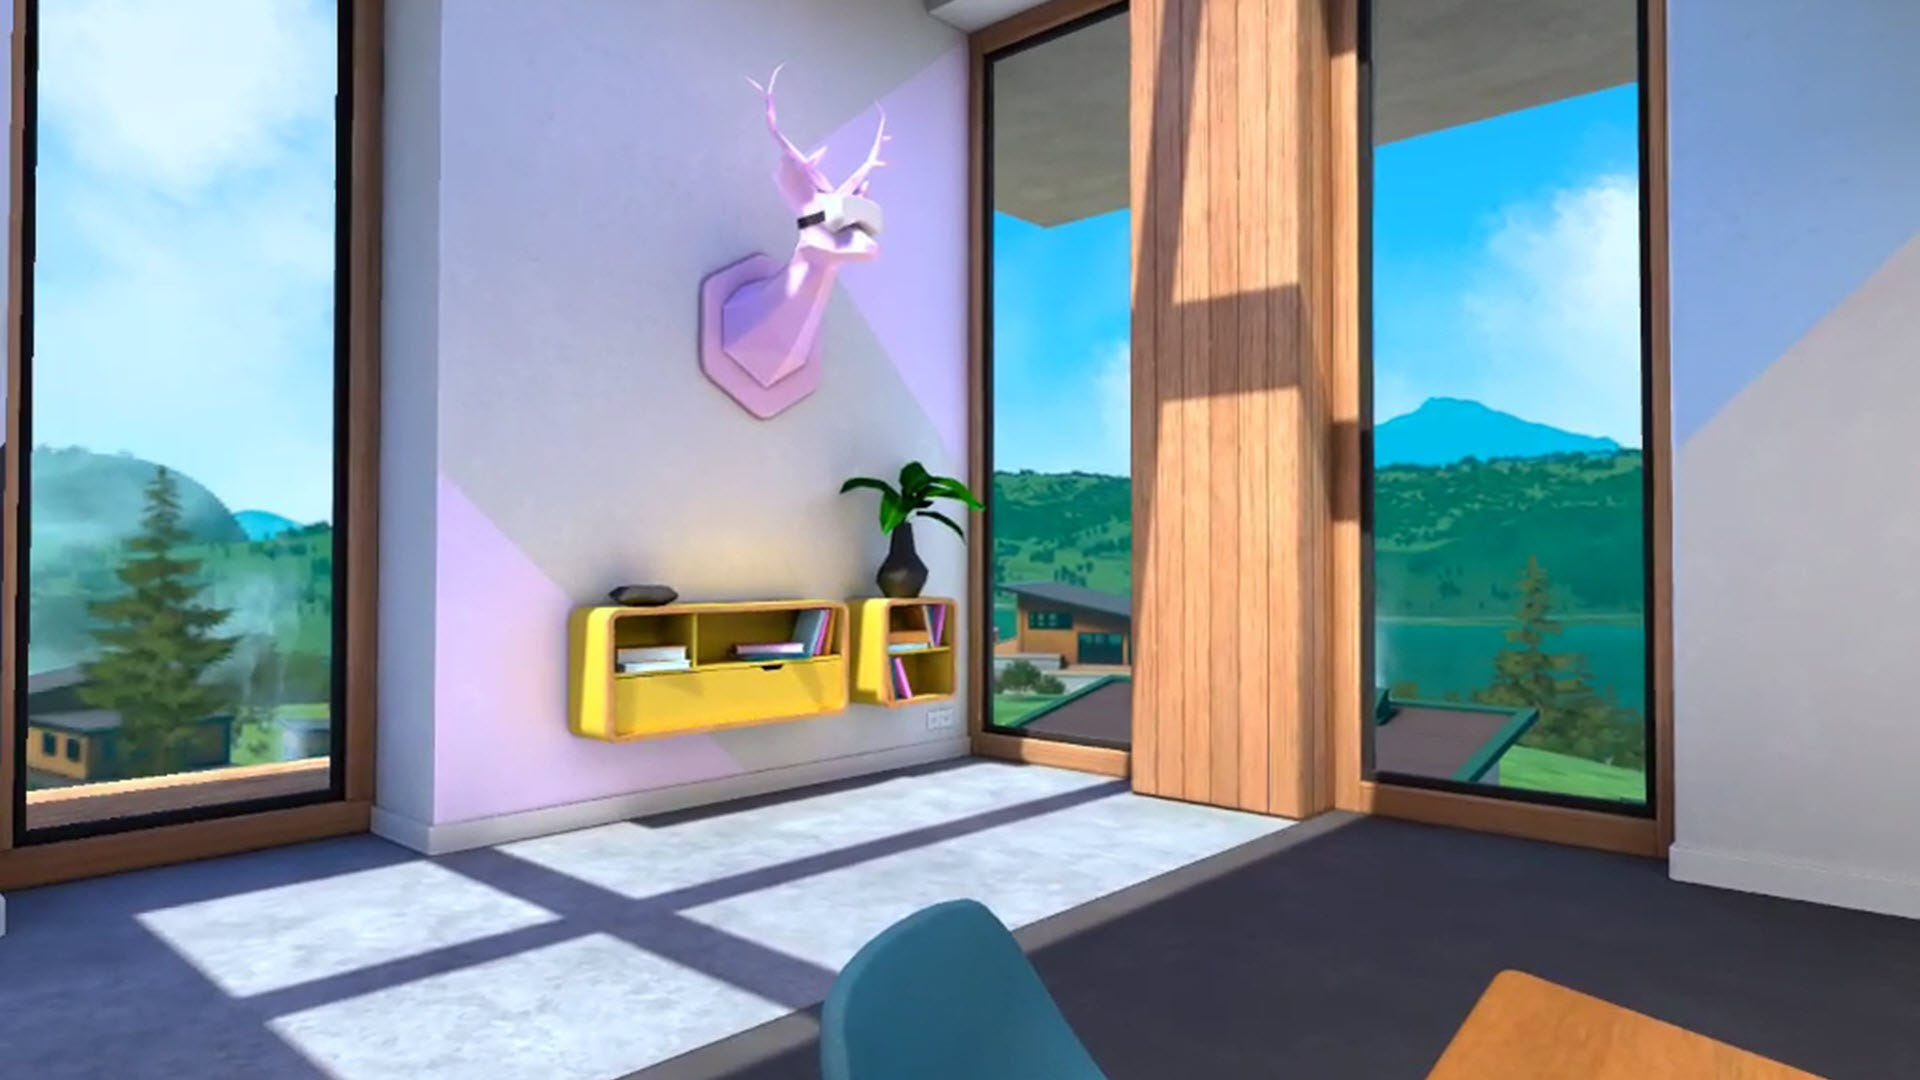 A VR deer head on a wall wearing a VR headset